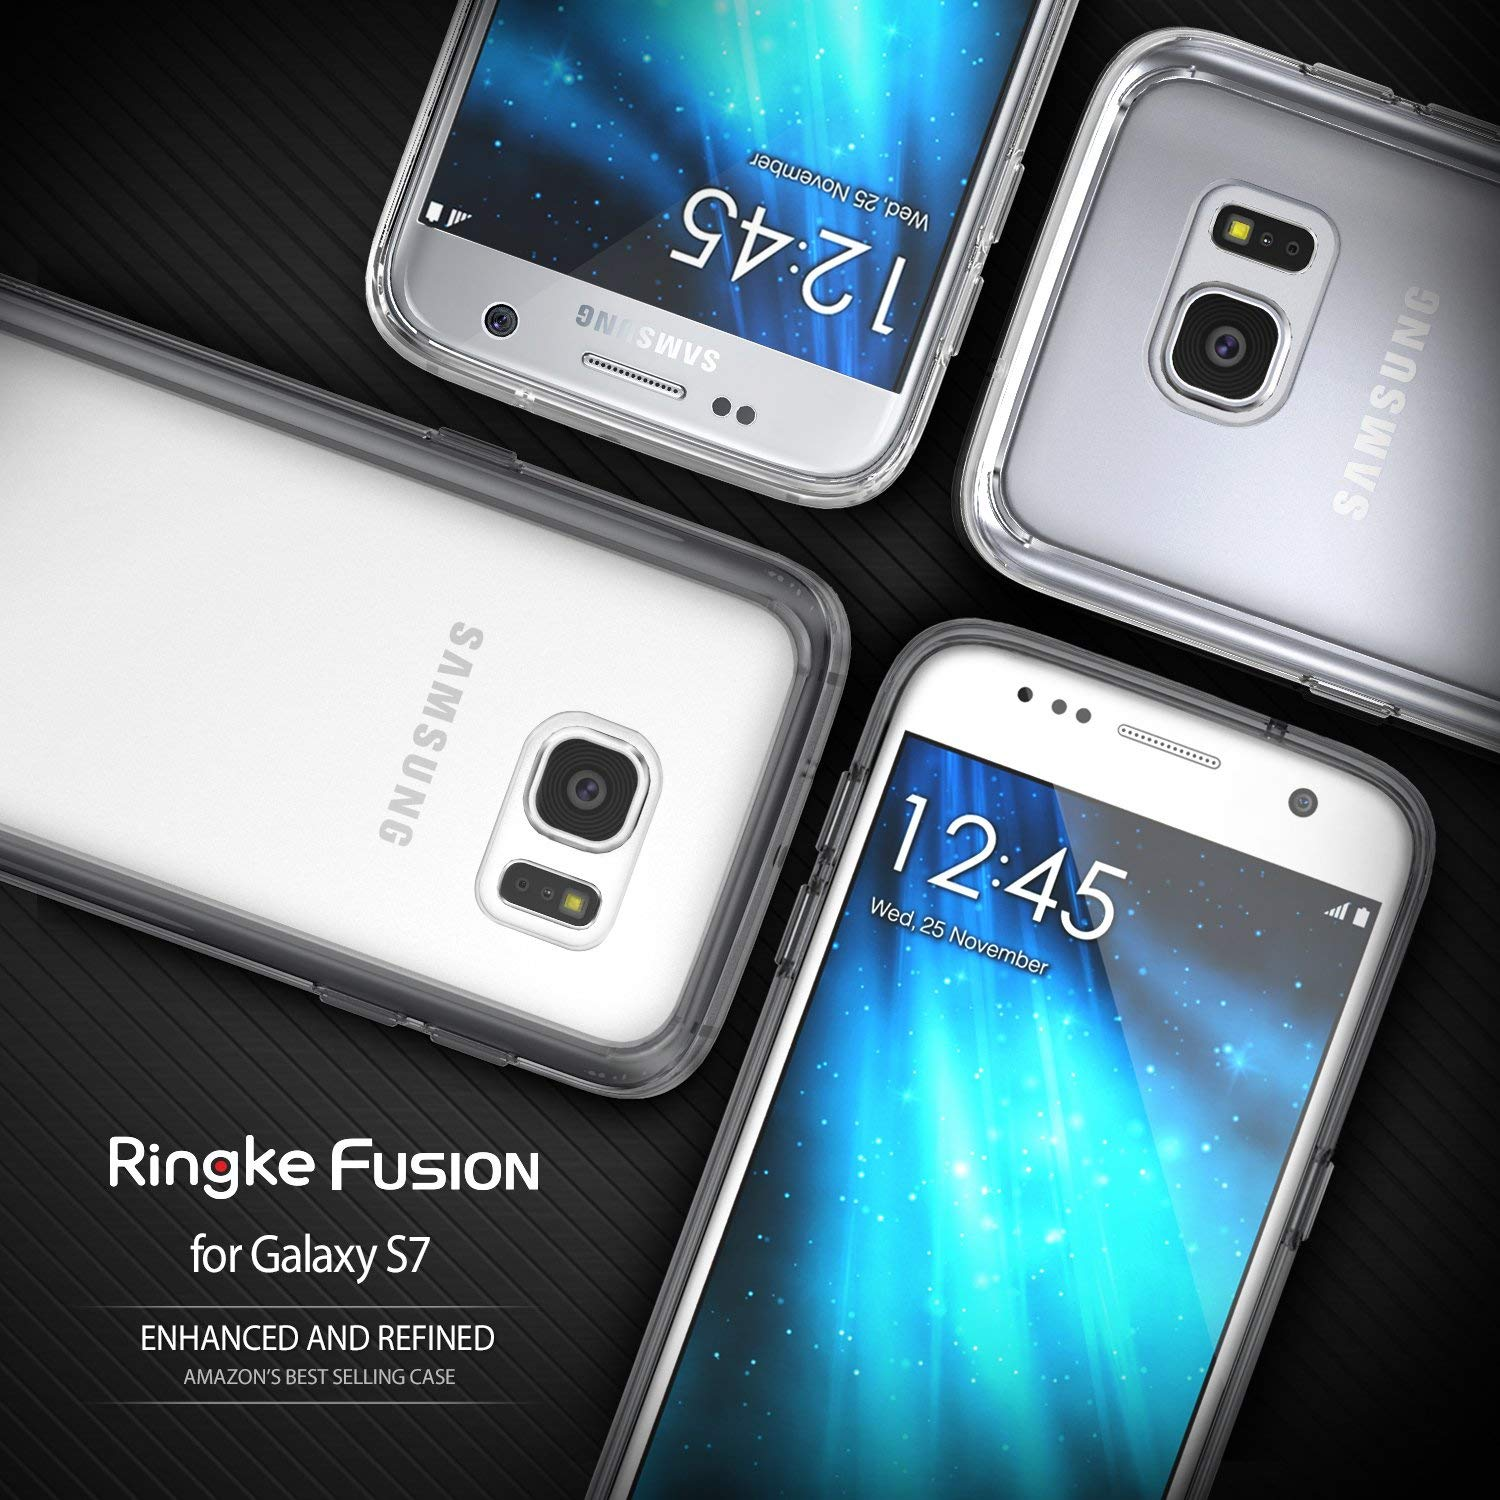 Ringke Fusion Compatible with Galaxy S7 Case Brilliant Clear Minimalist Hybrid Fortified PC Back TPU Bumper Impact Resistant, Shock Absorption for ...